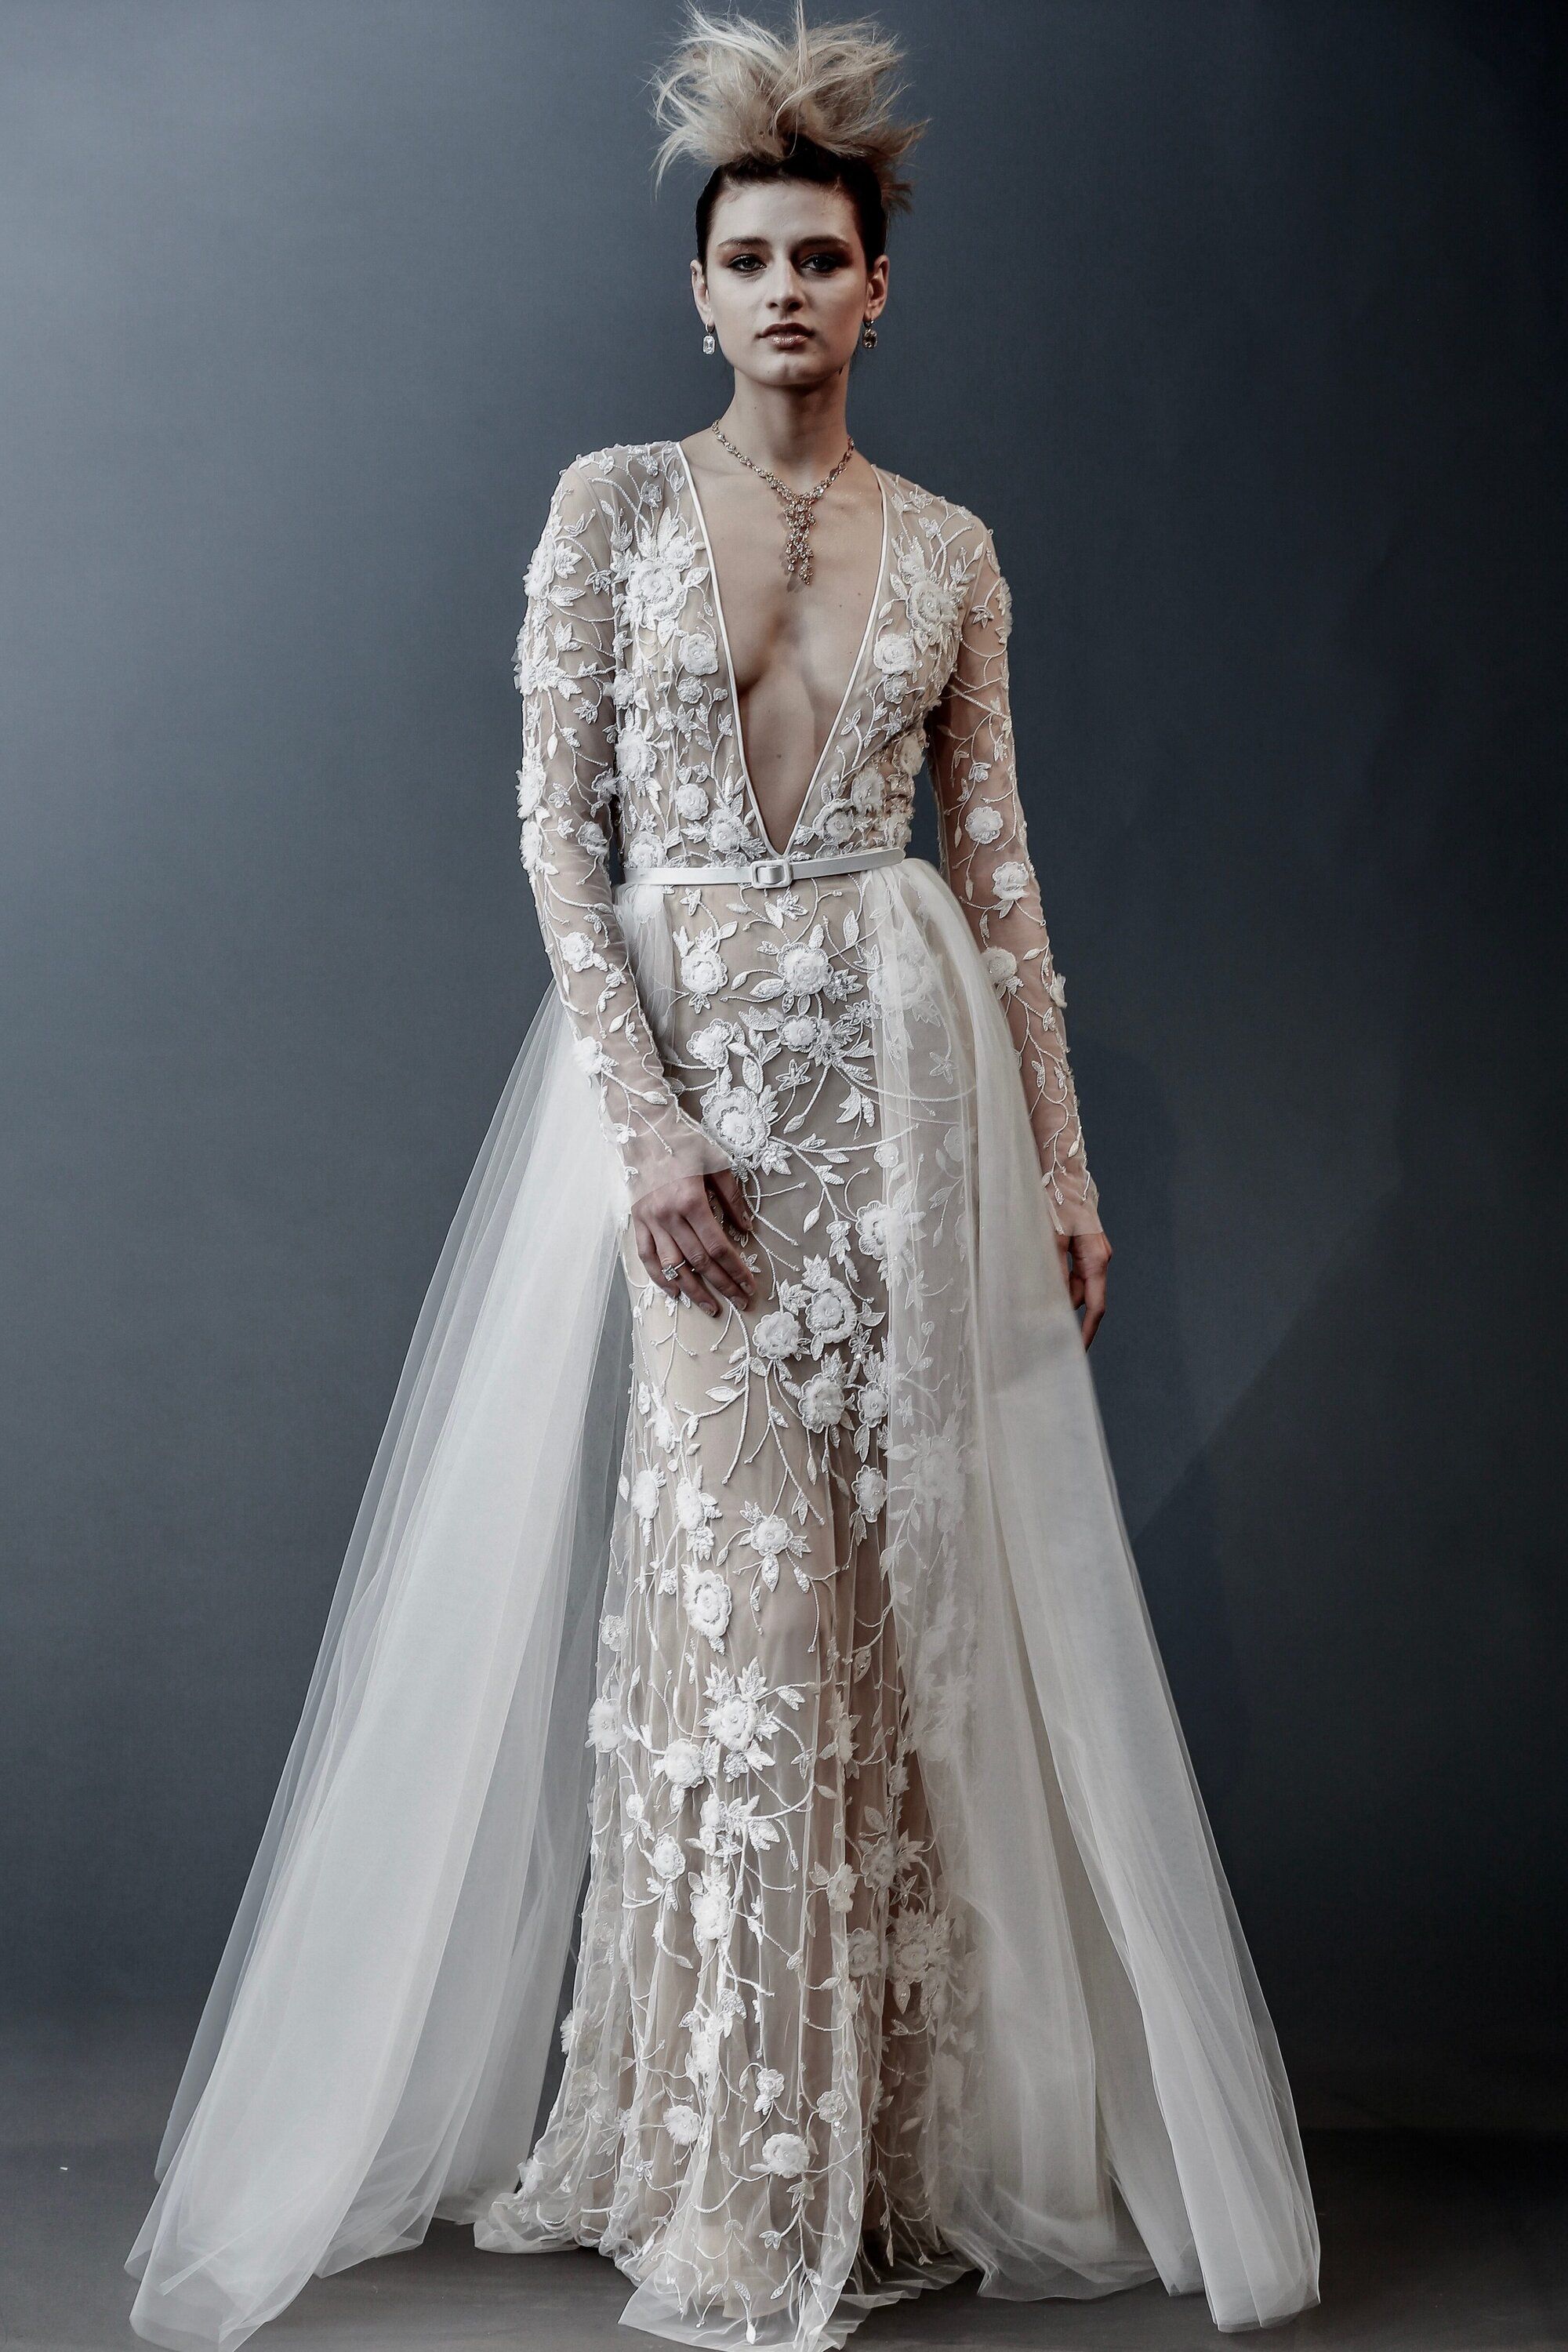 72d67ef1c882 Get the latest news and tips on the top global luxury wedding trends!